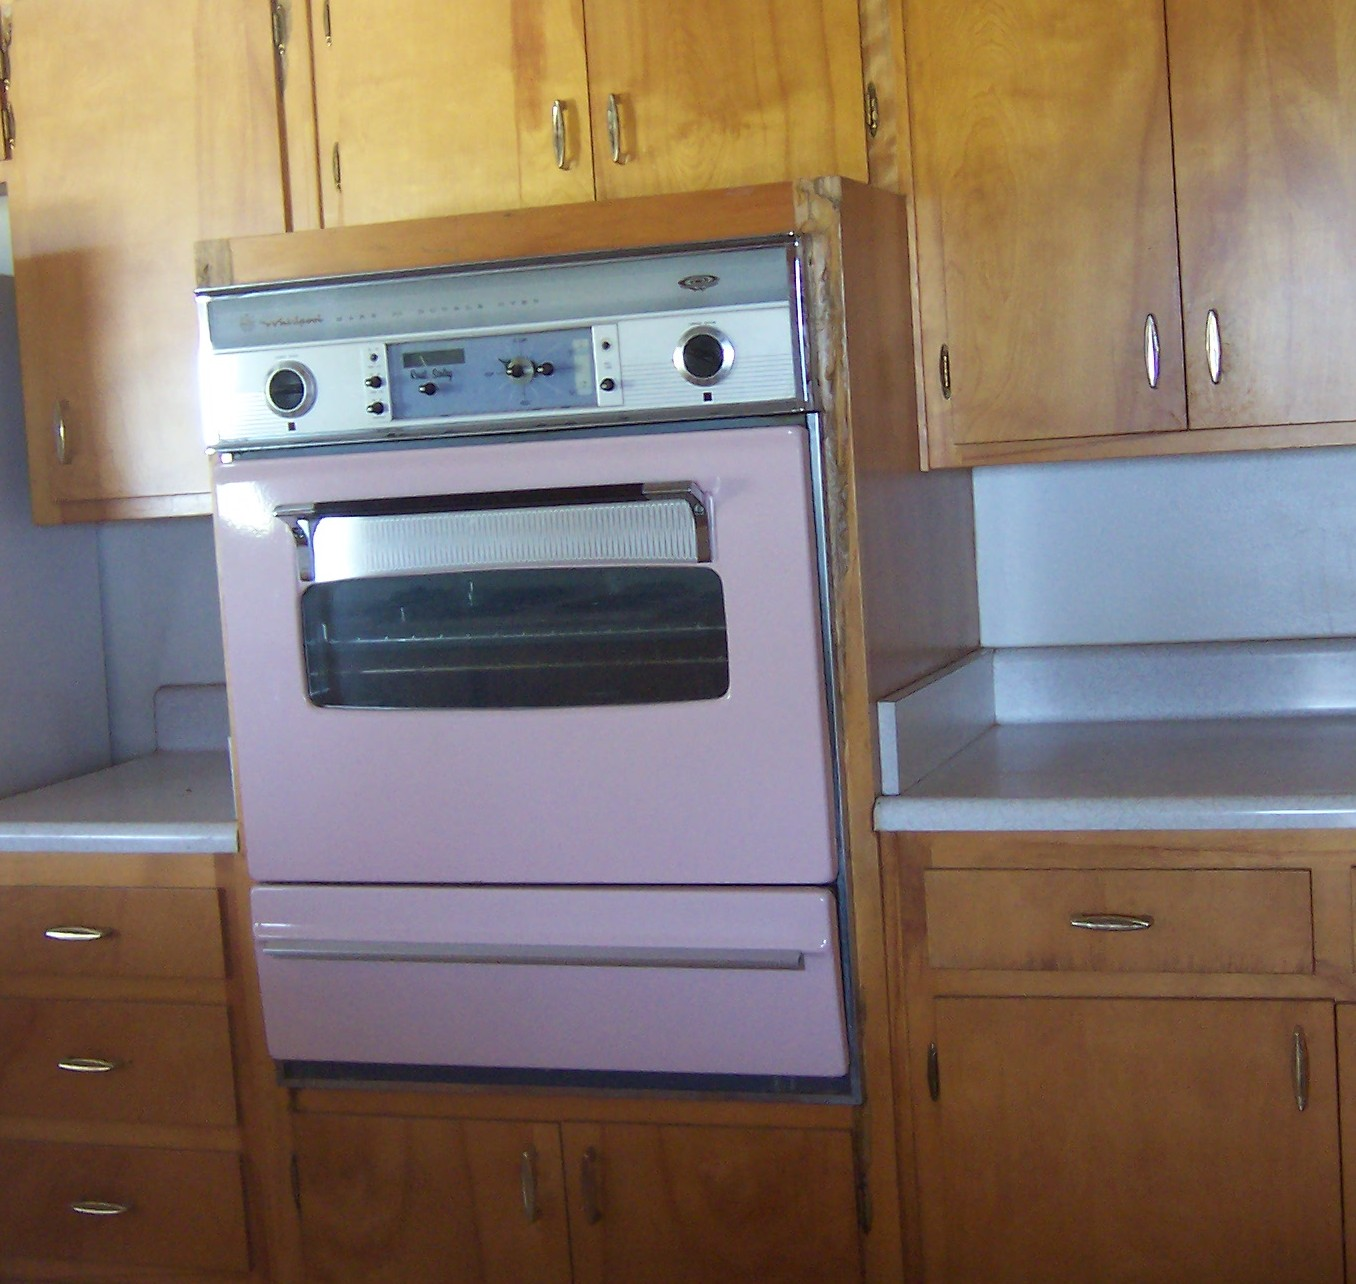 A pink wall oven in a wooden kitchen.